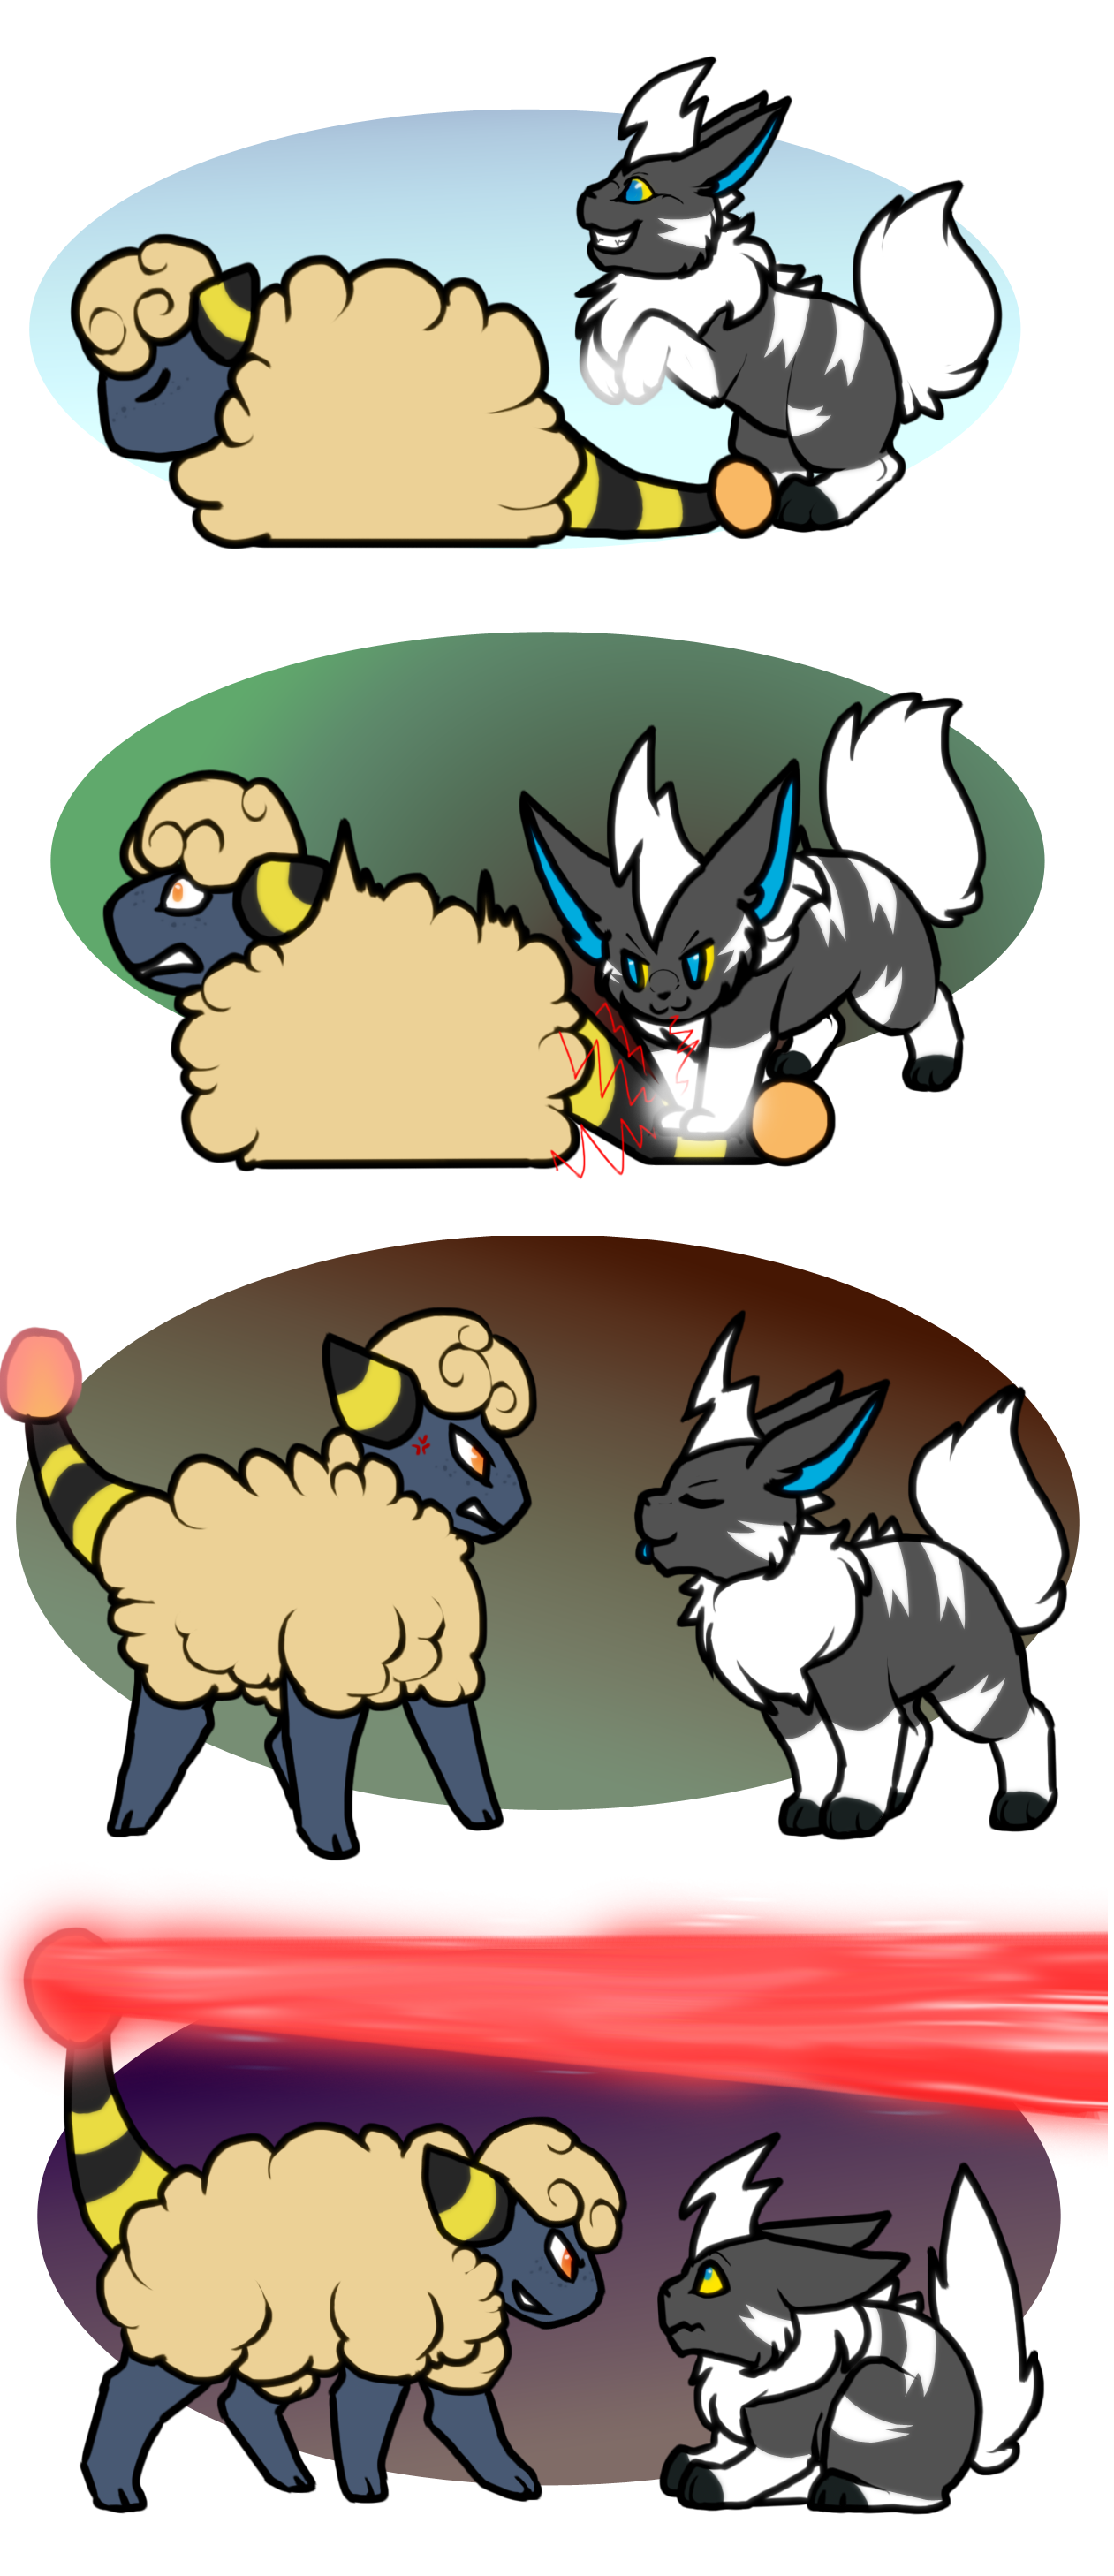 PKMN|Moves| Stomp and Power Gem by DevilsRealm